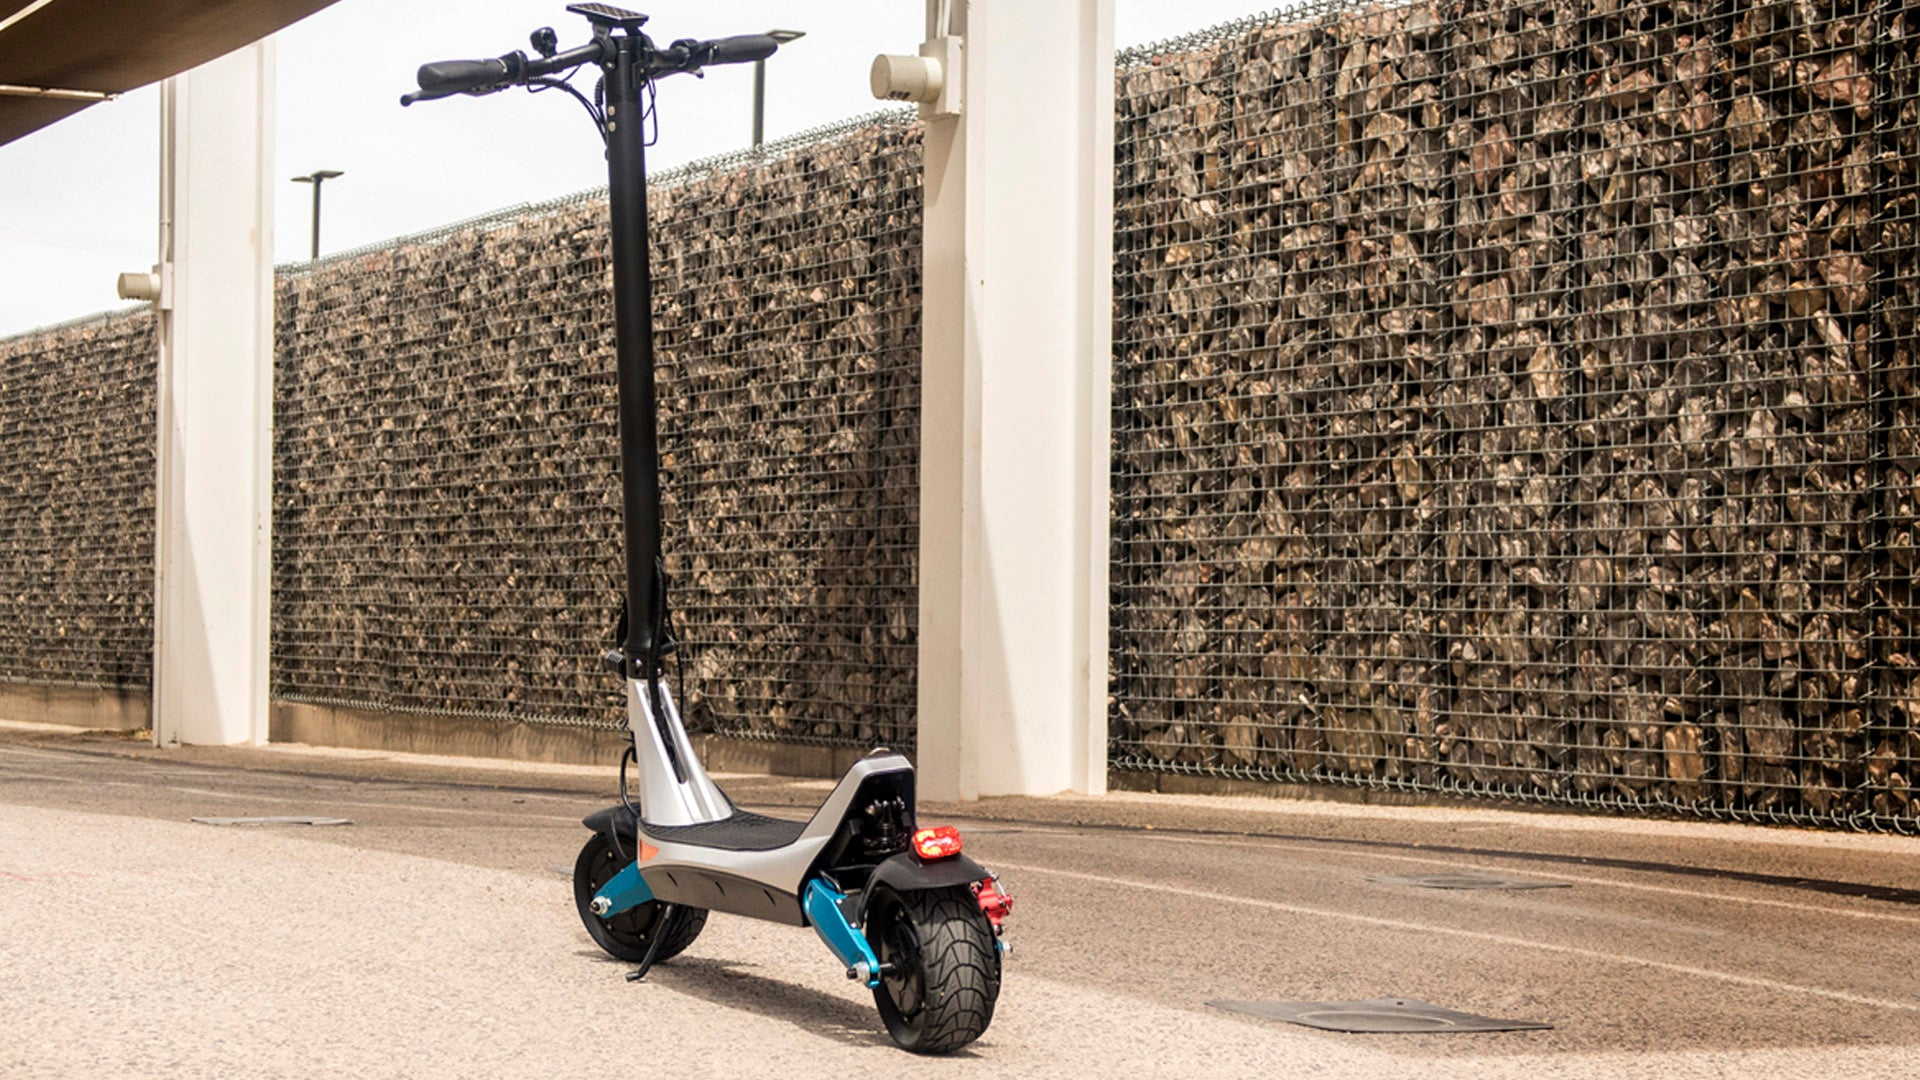 Solid Tire electric scooter for commuting